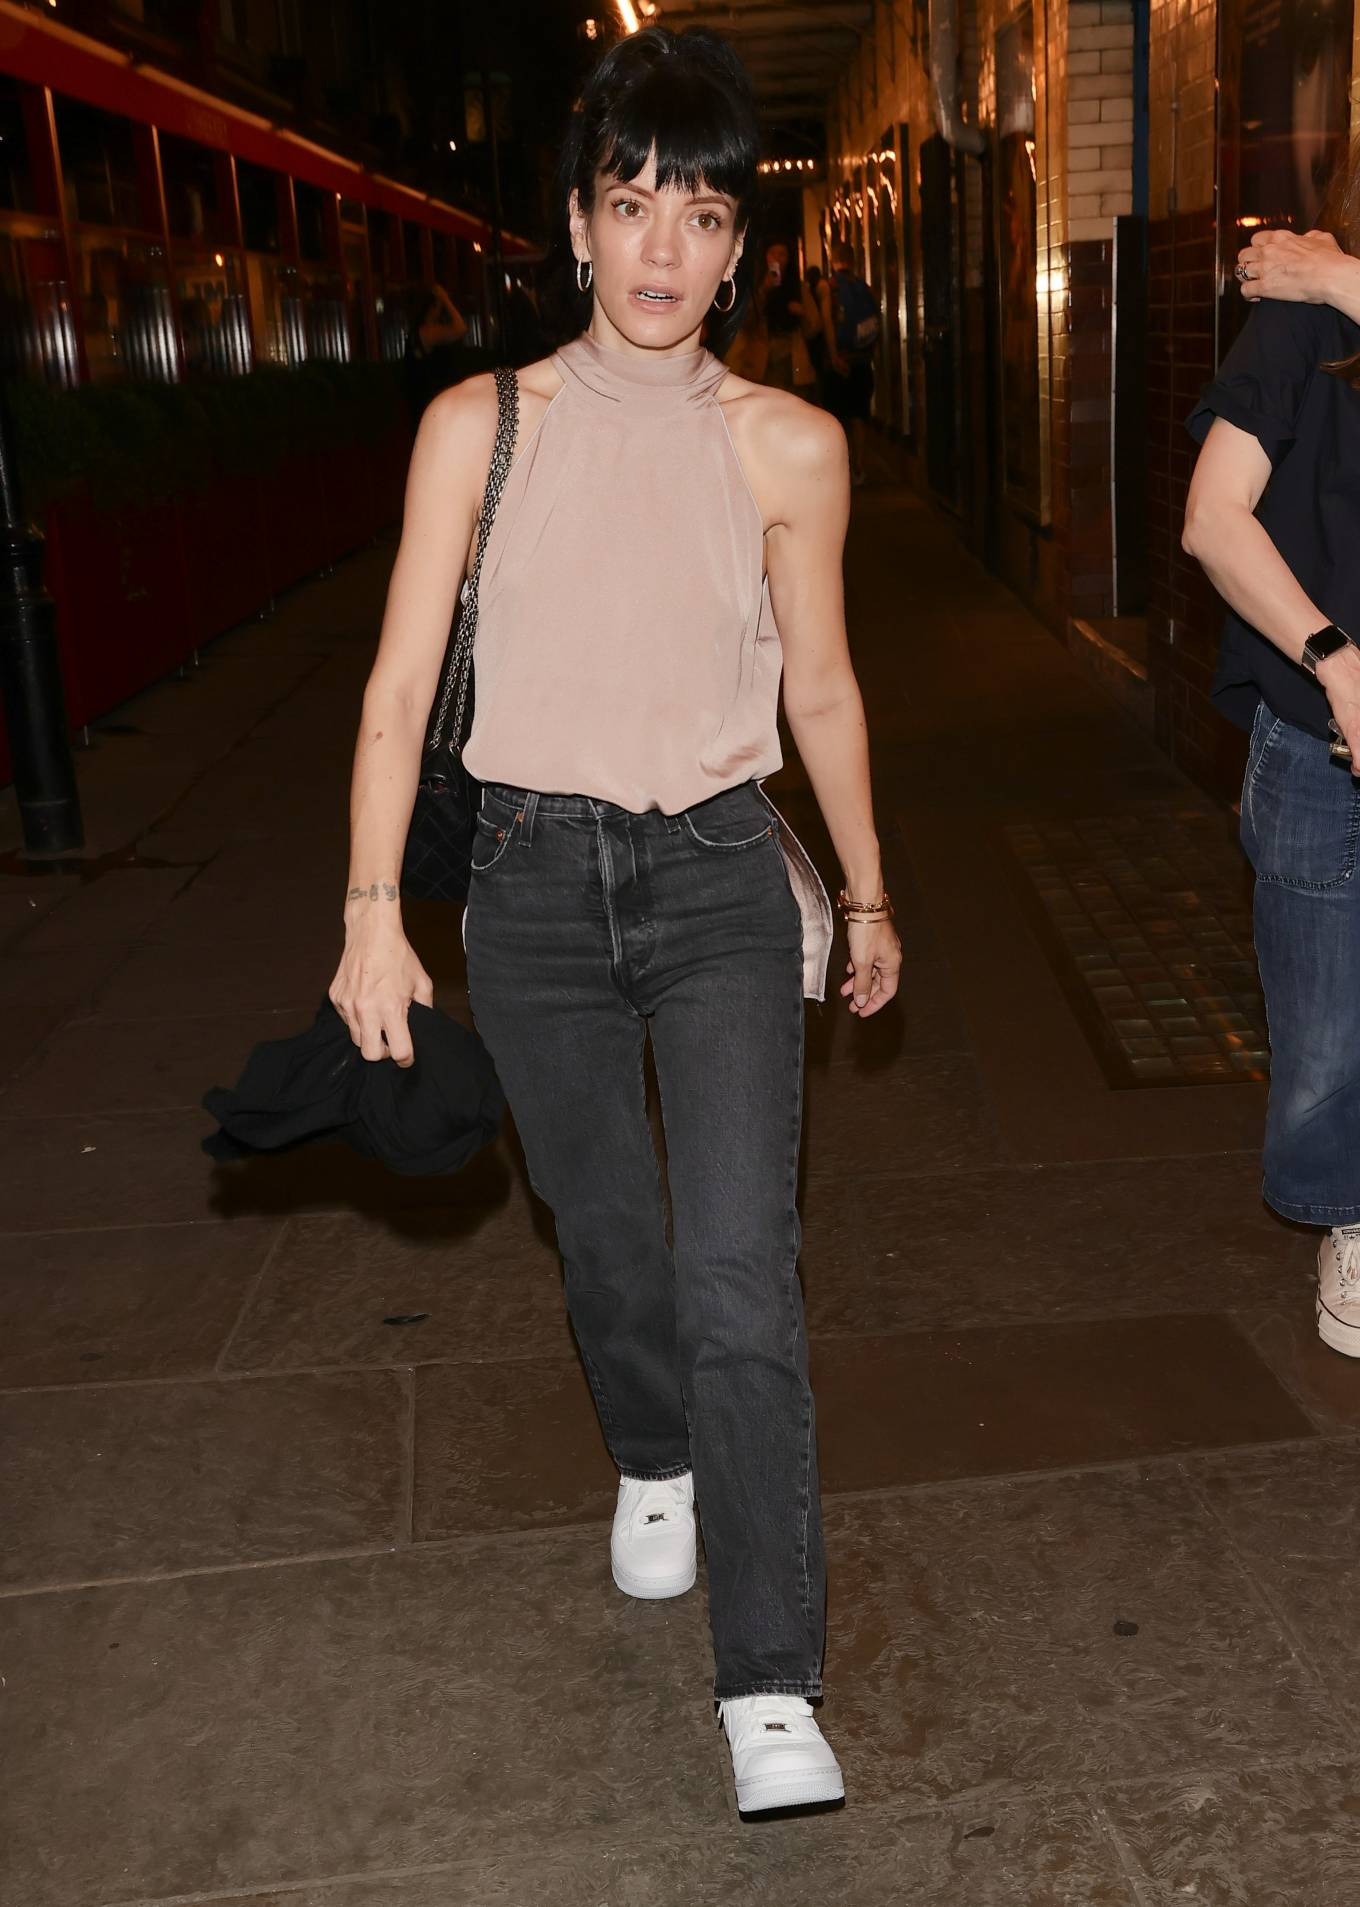 Lily Allen - In a denim at 22.2A Ghost Story theatre night in London